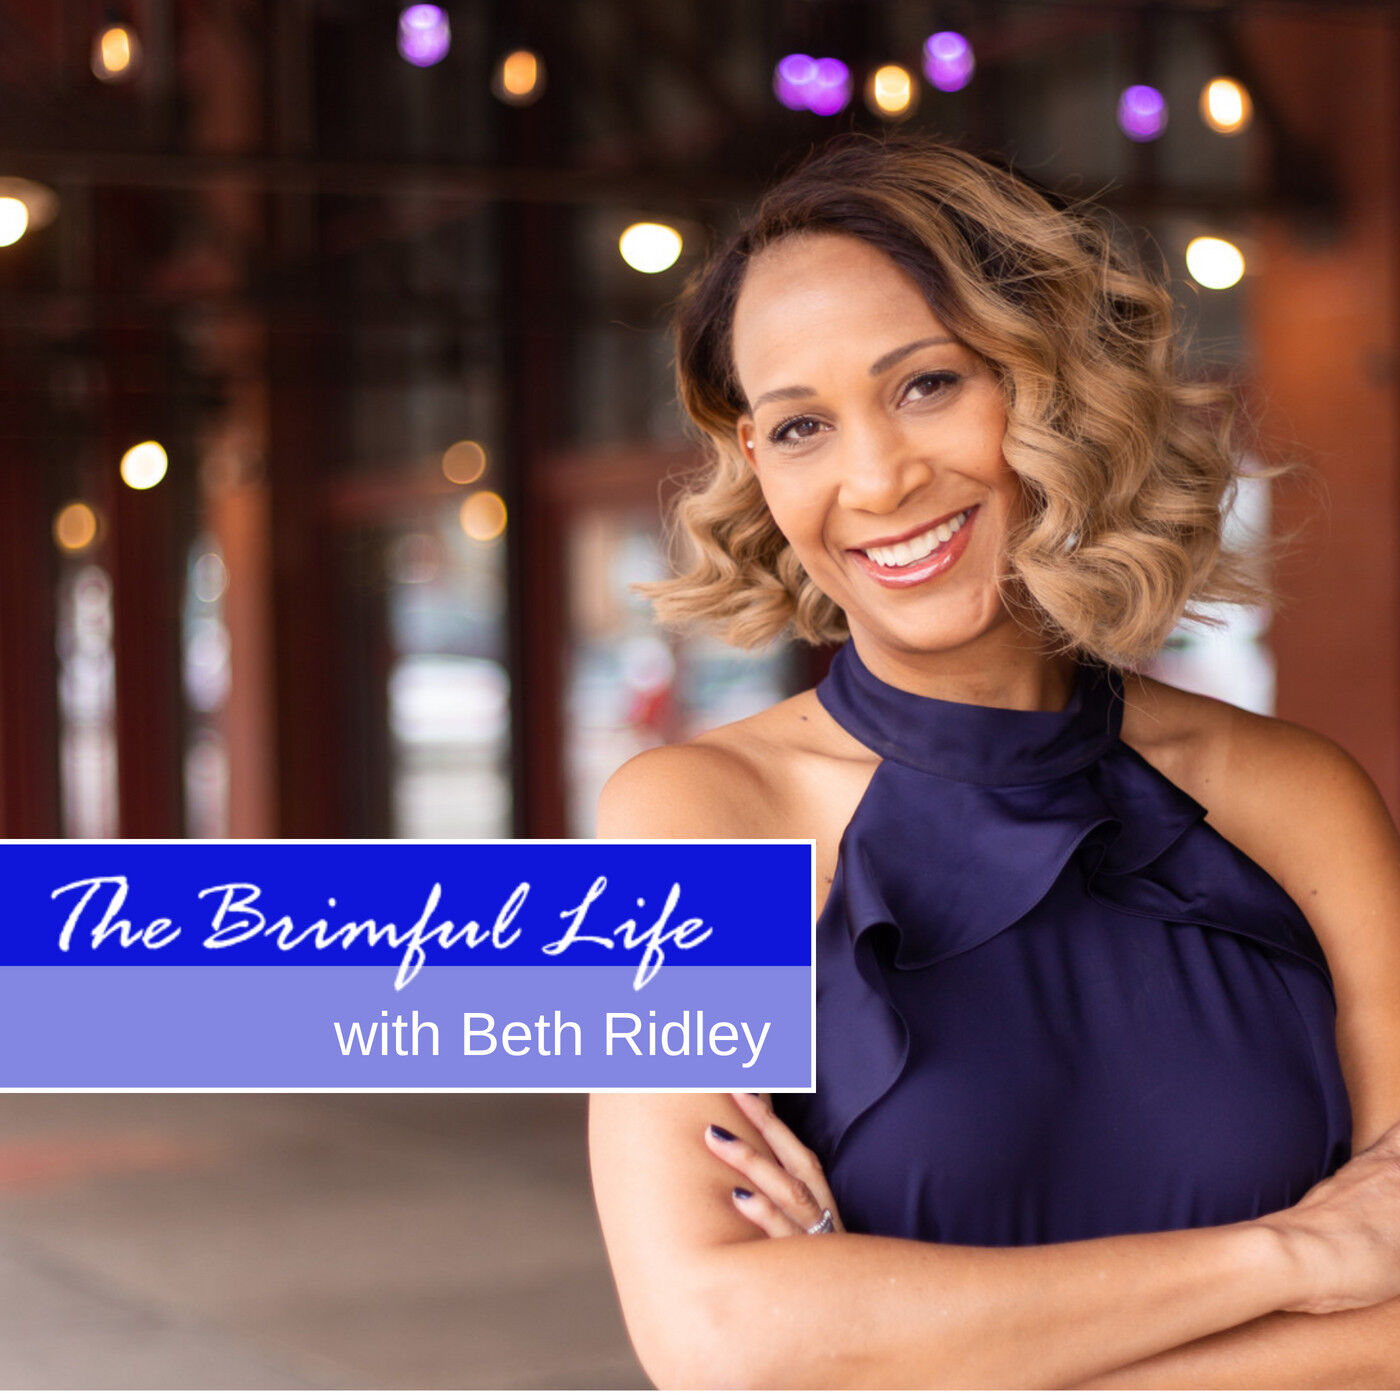 The Brimful Life with Beth Ridley